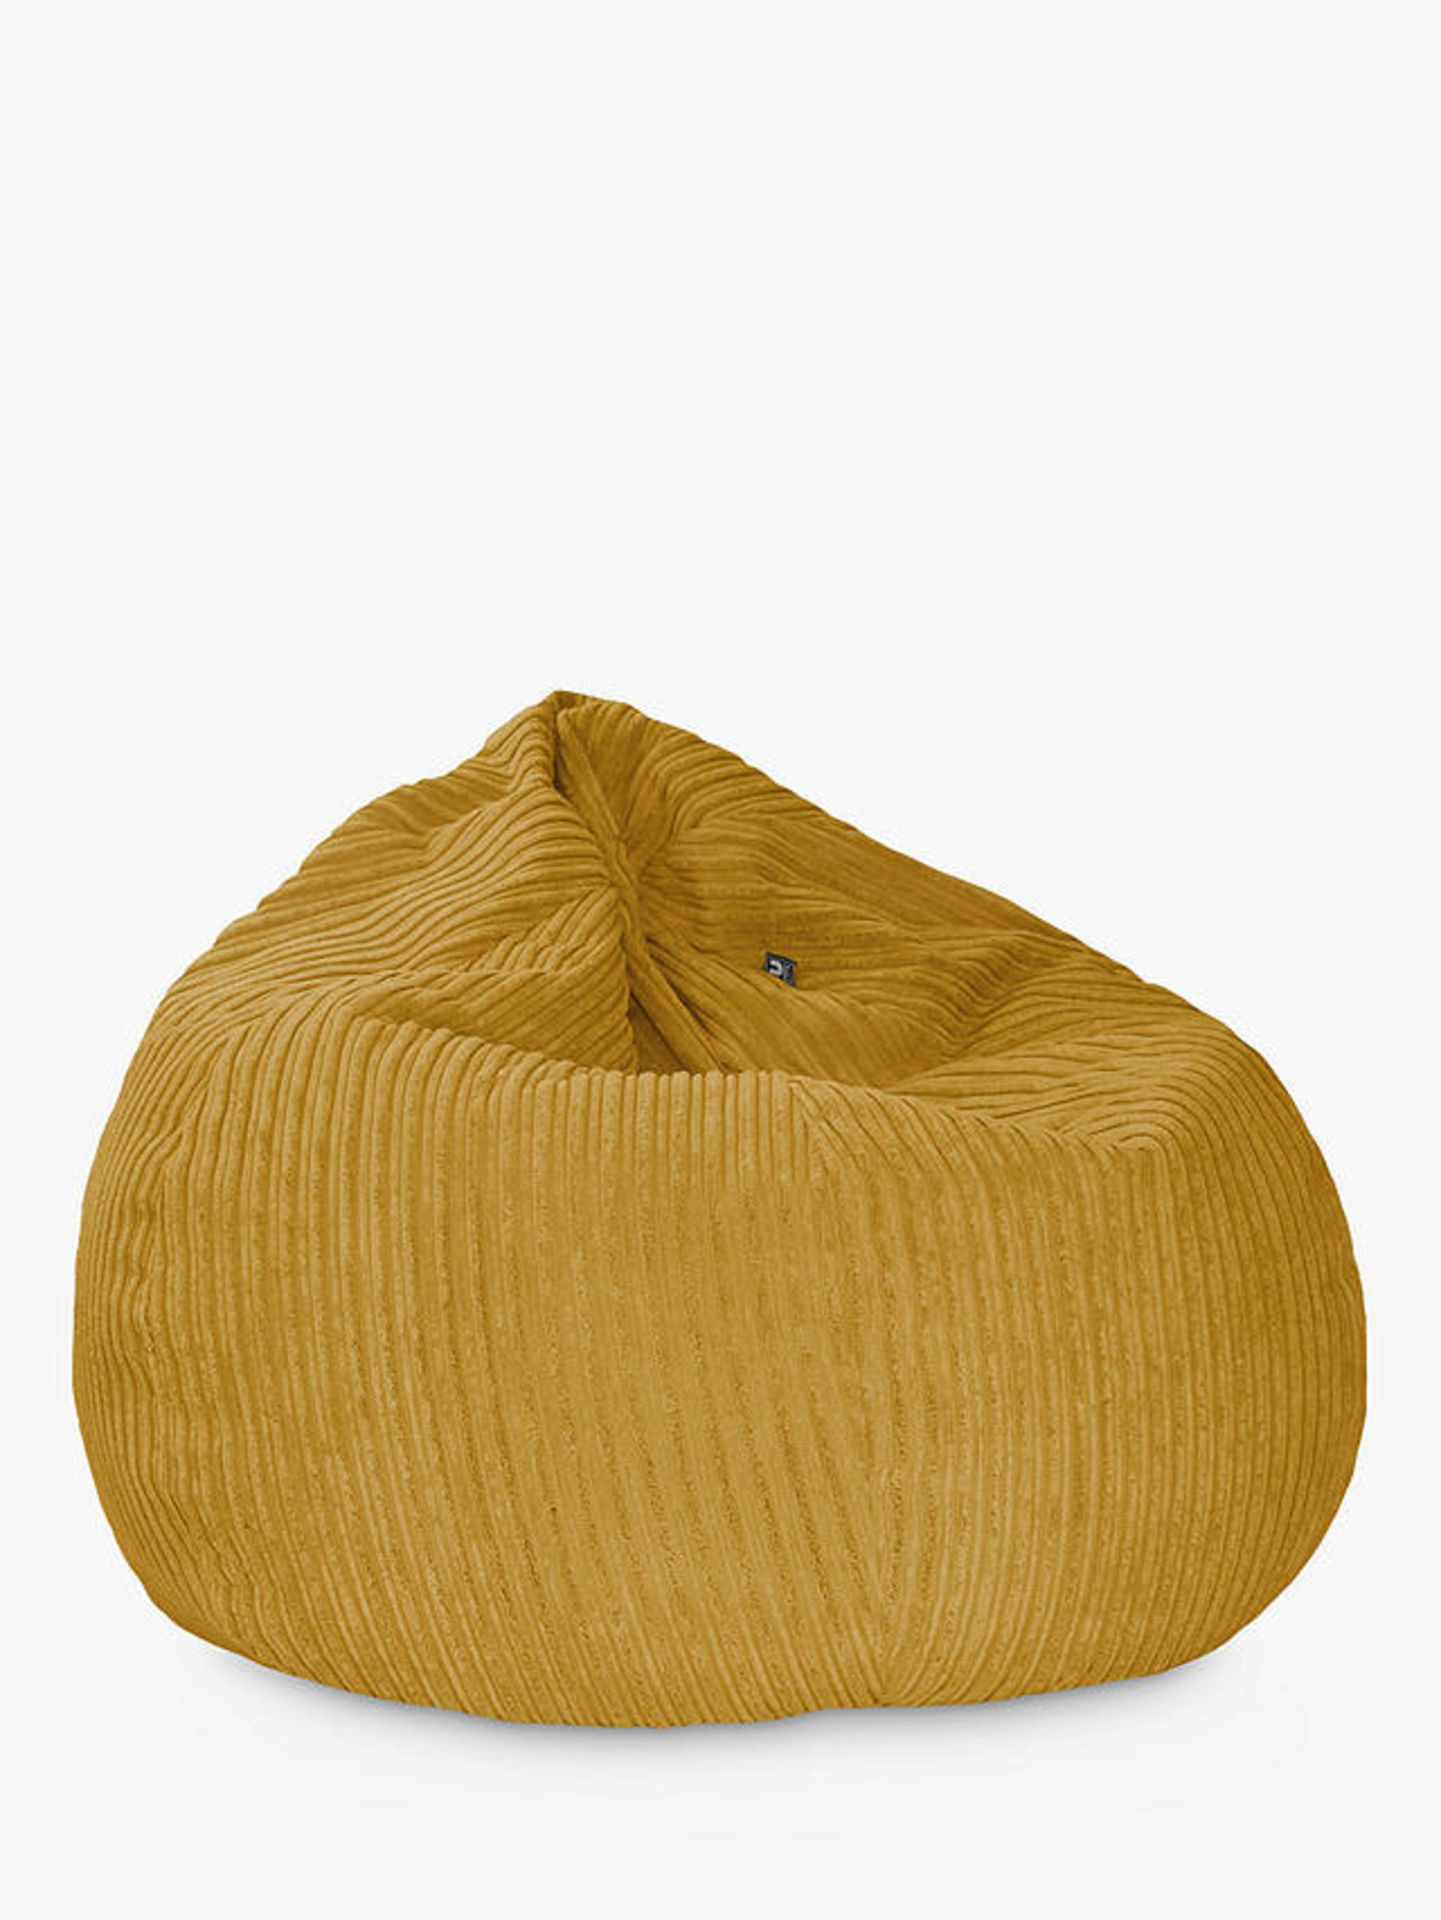 Rucomfy jumbo cord bean bag Mustard *COLLECTION ONLY*